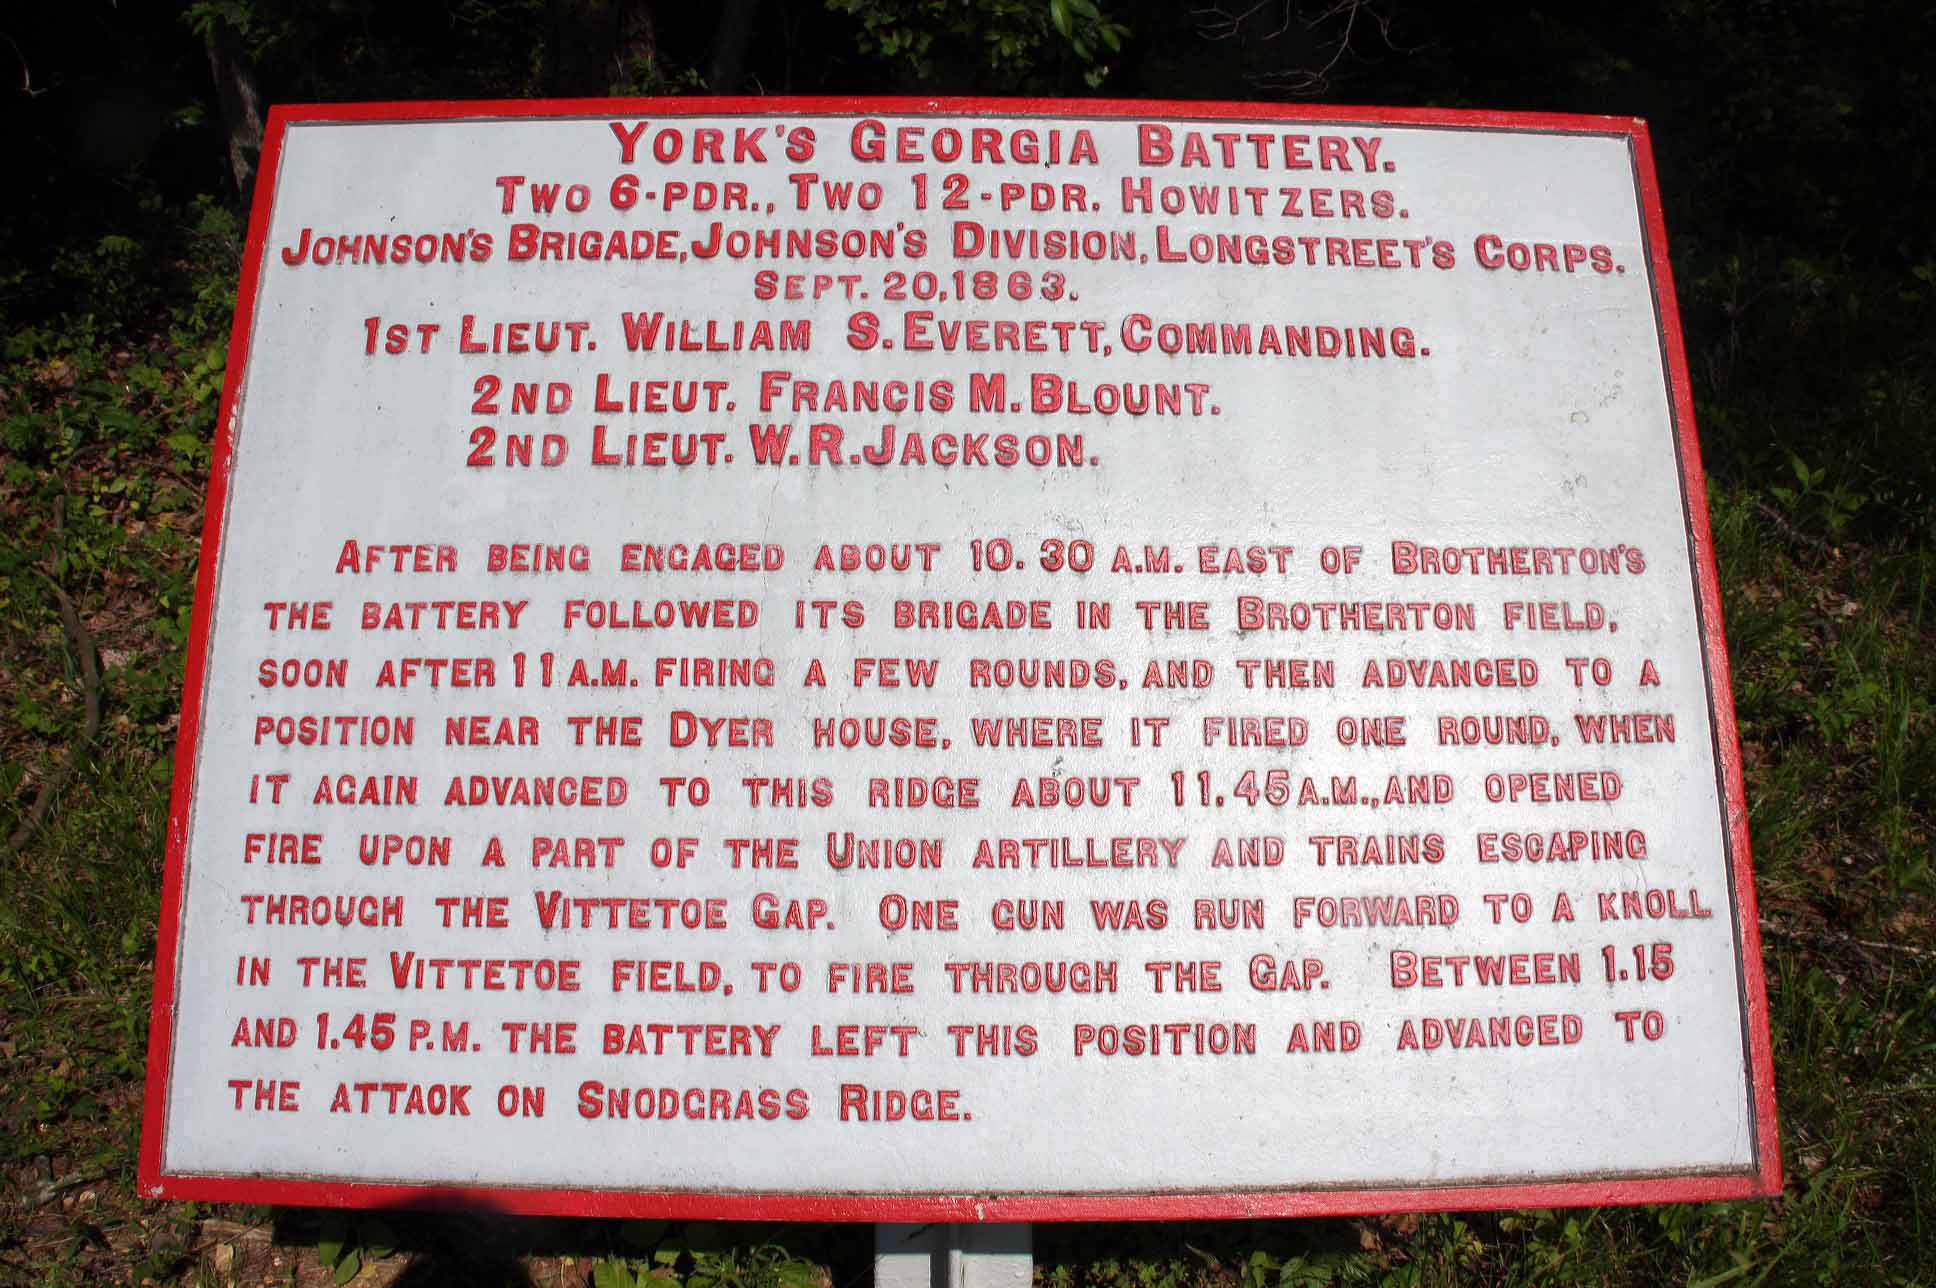 York's Georgia Battery Tablet, click photo to enlarge.